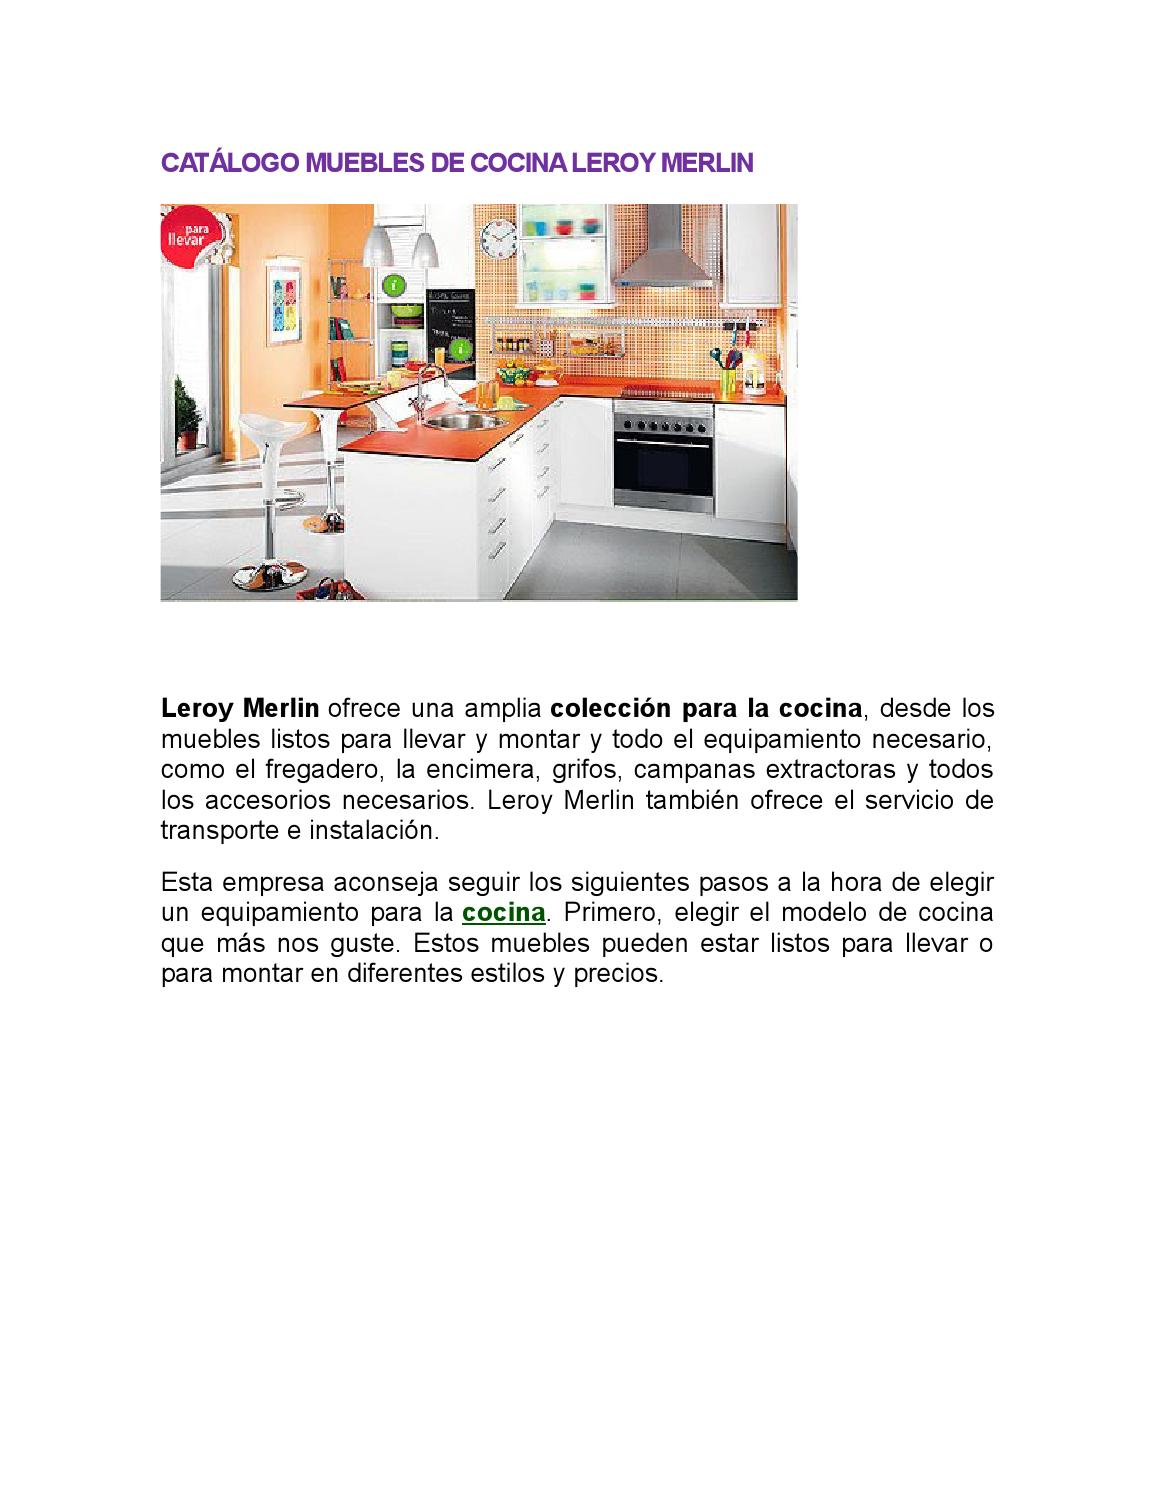 Leroy merlin campanas extractoras cheap ofertas de for Campana cocina leroy merlin